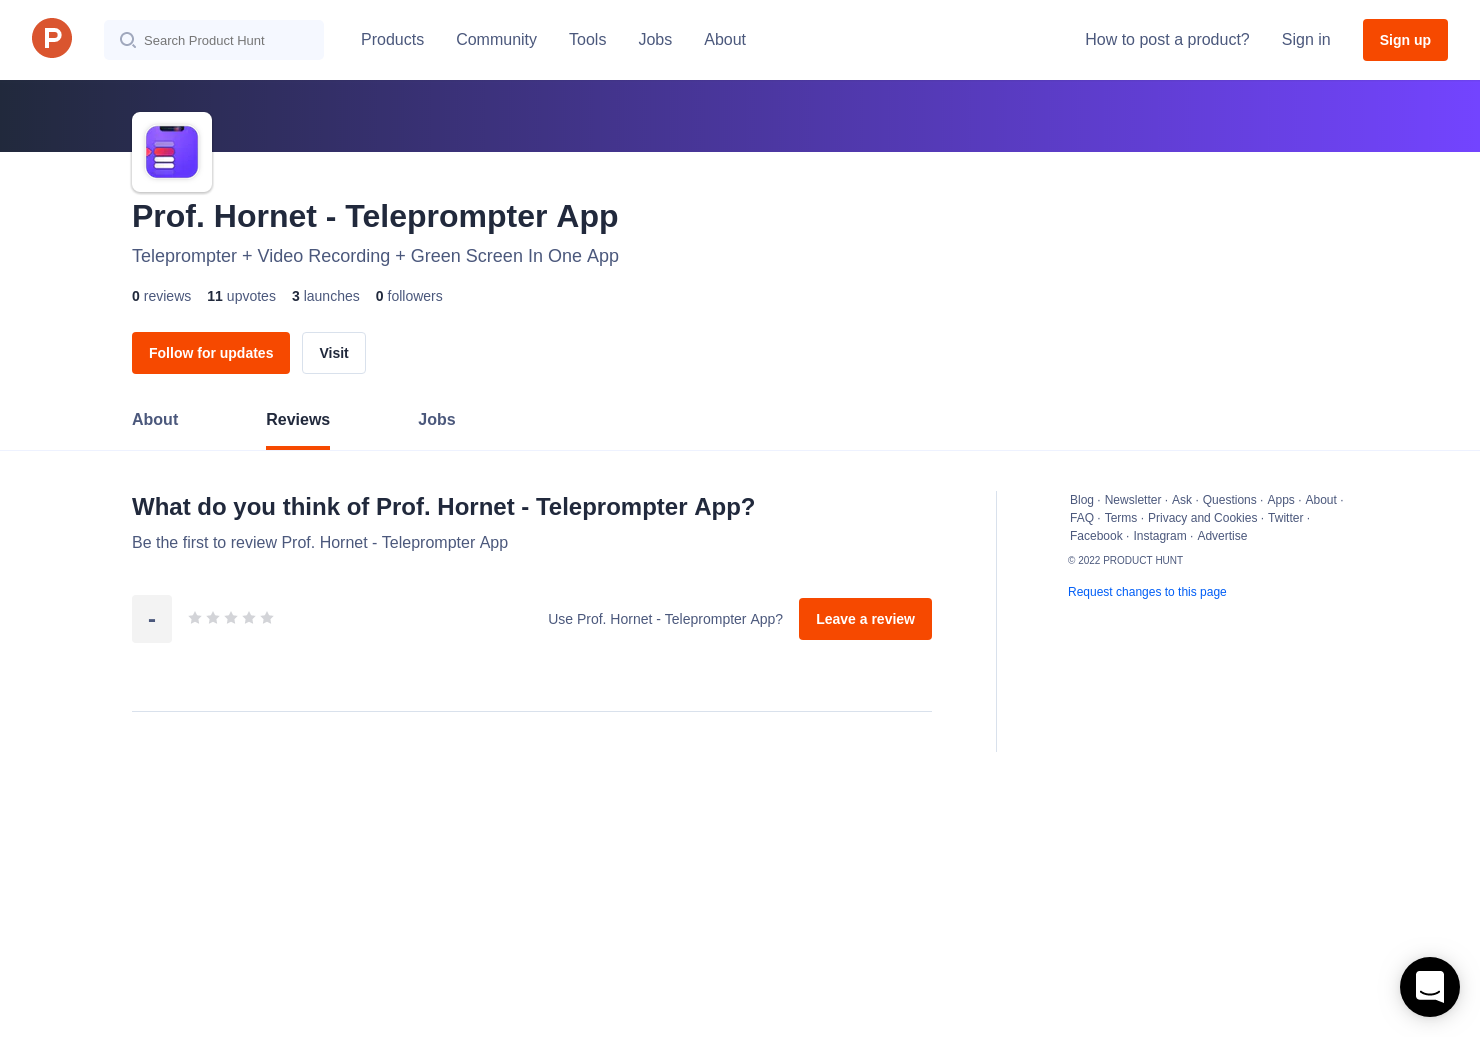 Prof  Hornet - Teleprompter App Reviews - Pros, Cons and Rating